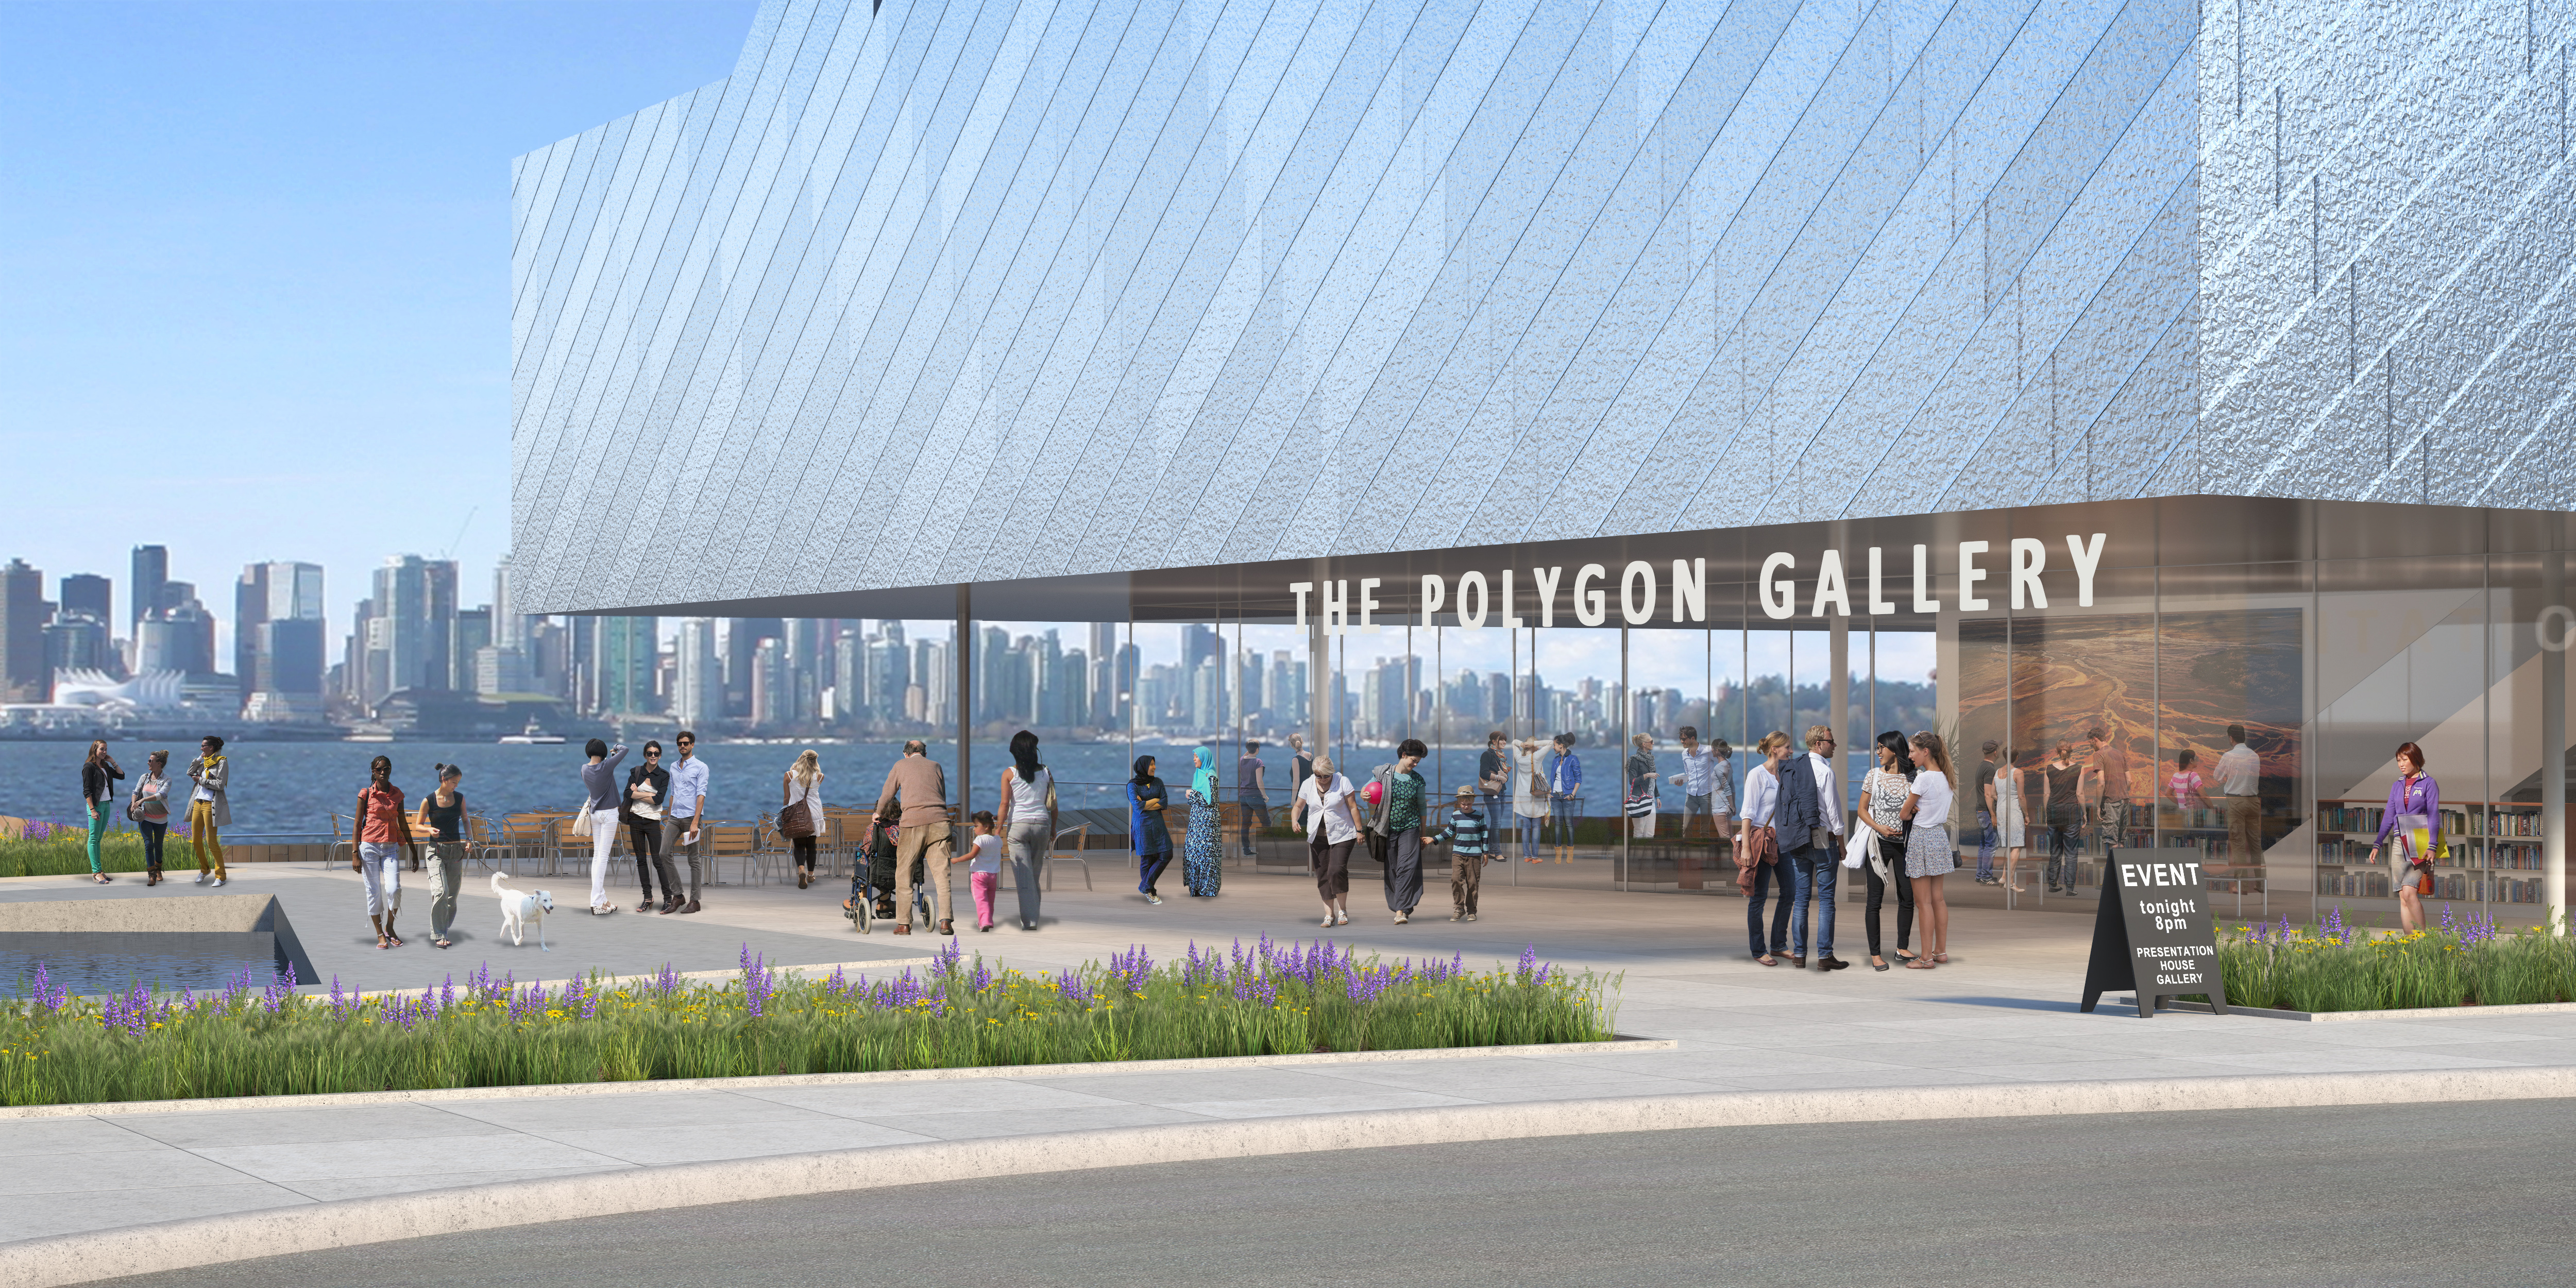 2014.11.17 The Polygon Gallery - with City